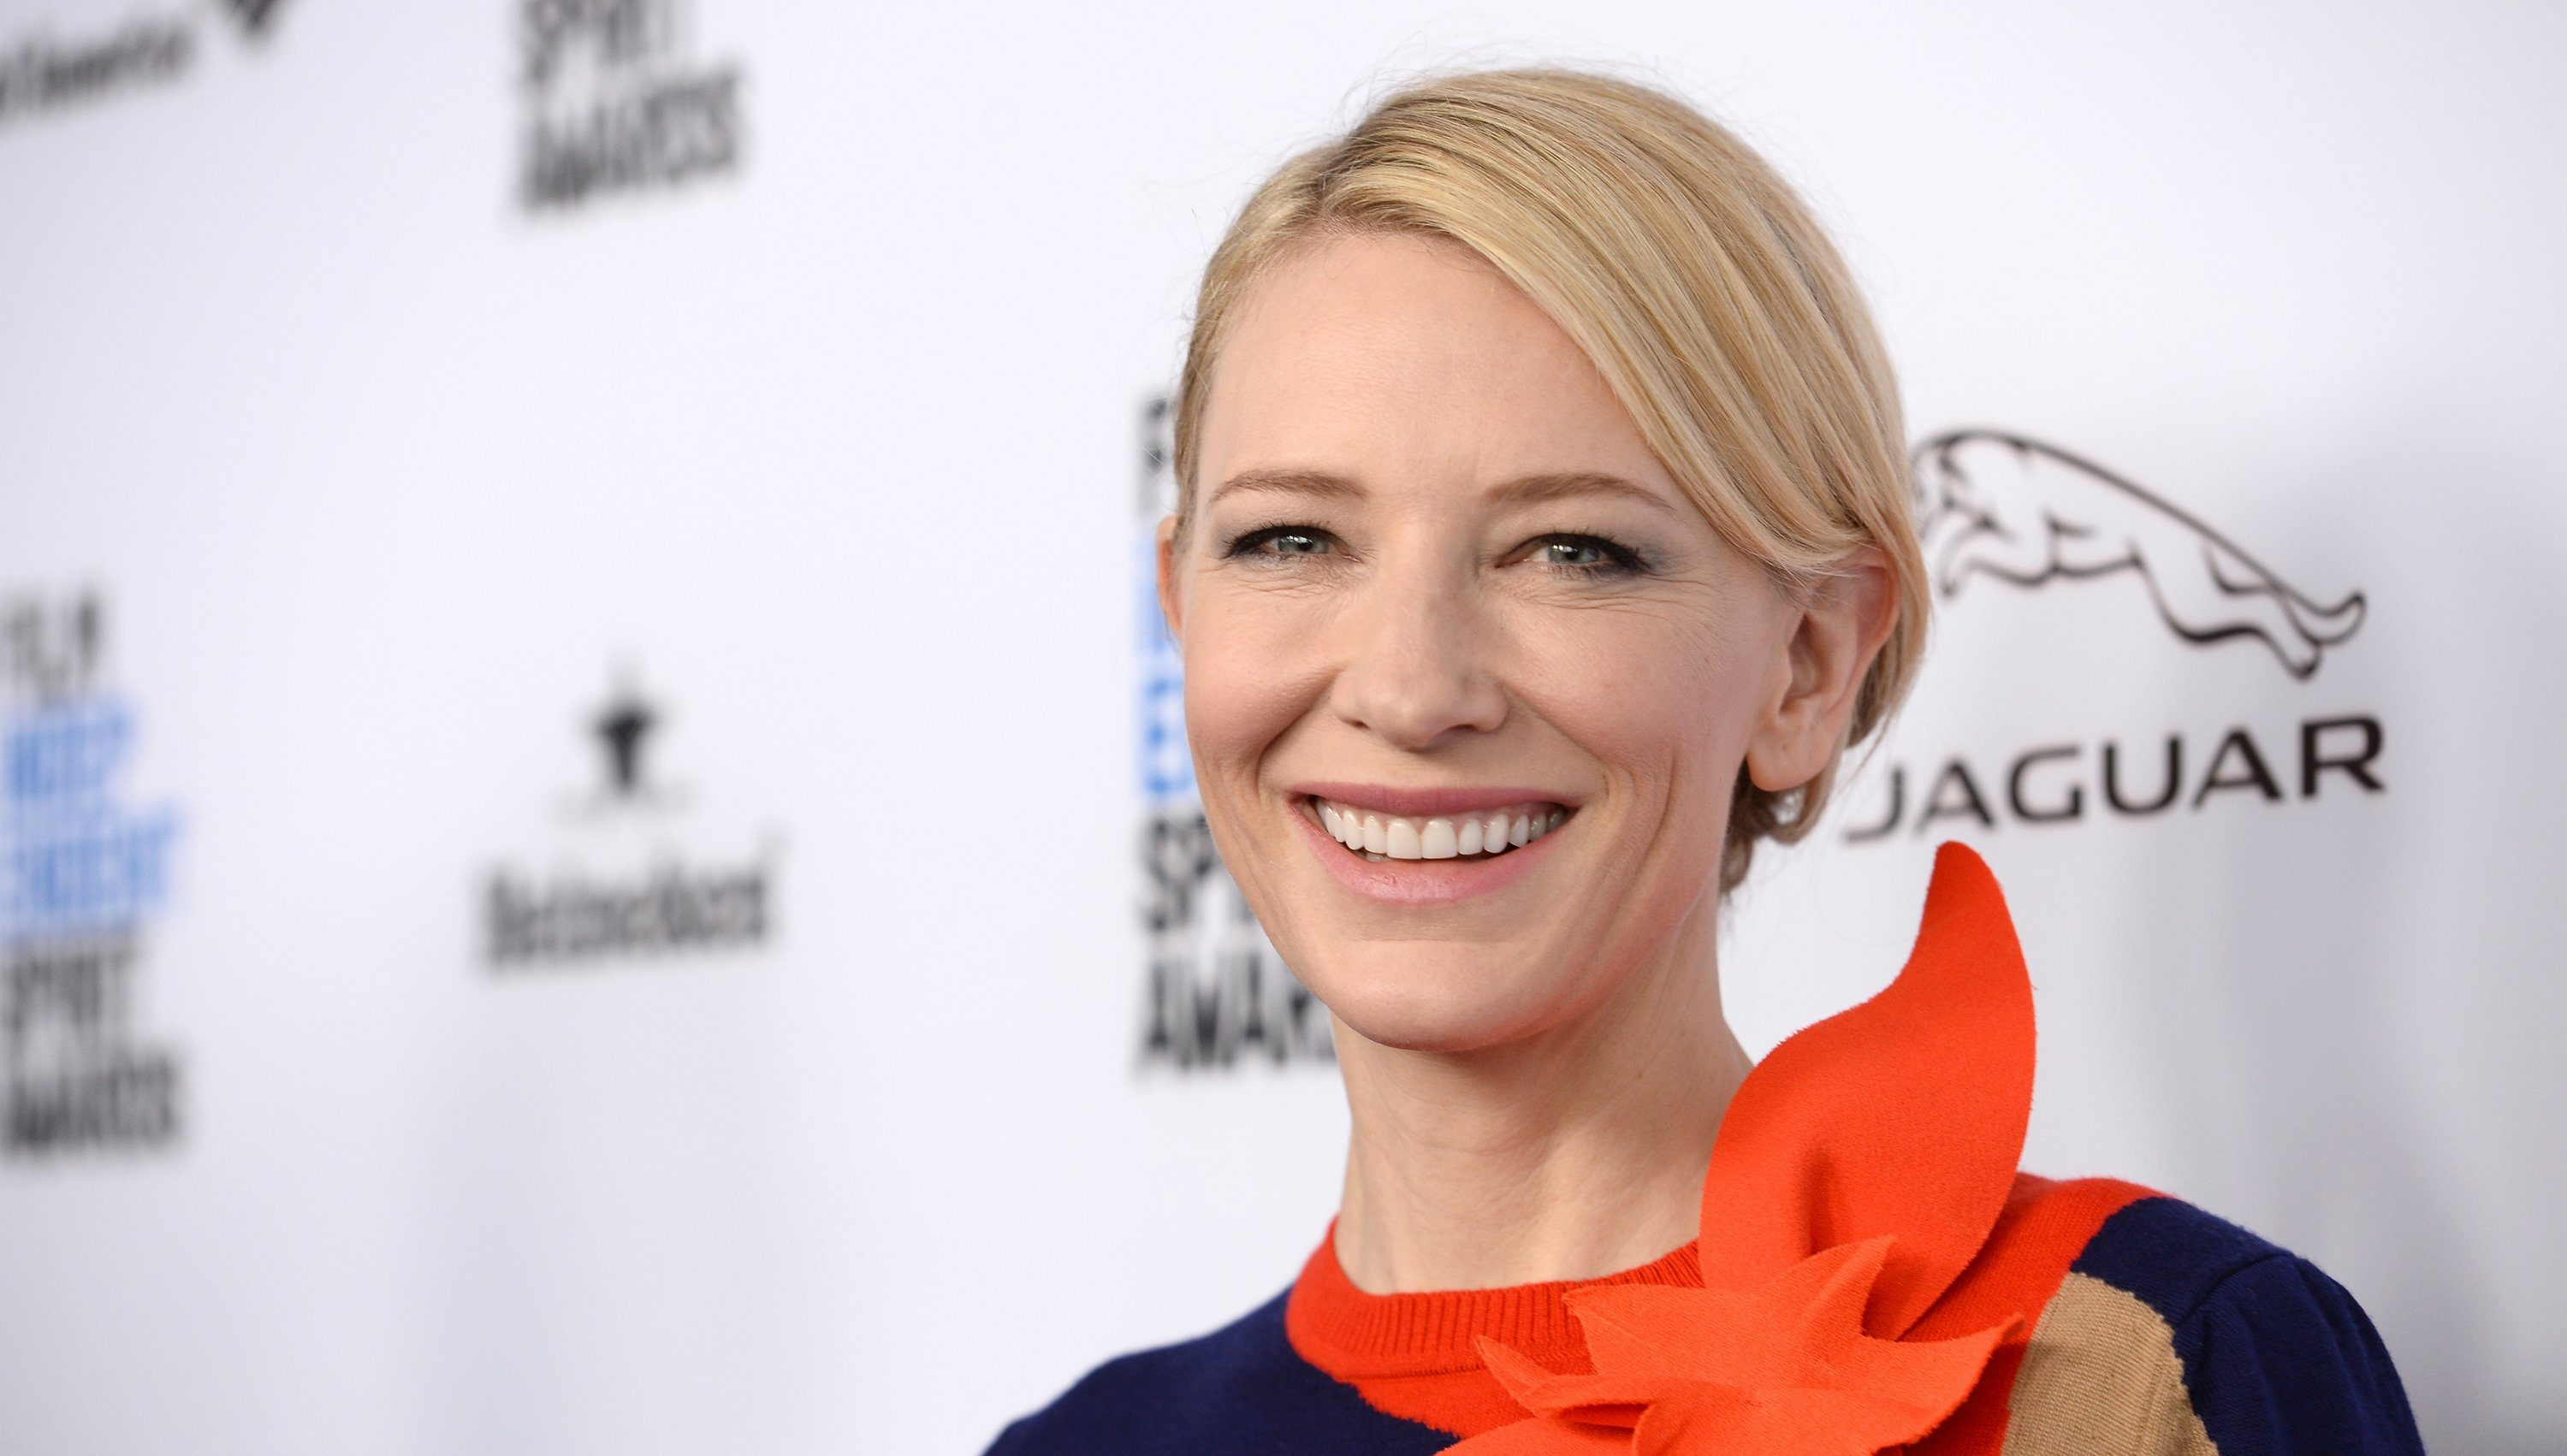 Cate Blanchett interviewed by People Magazine #SKII